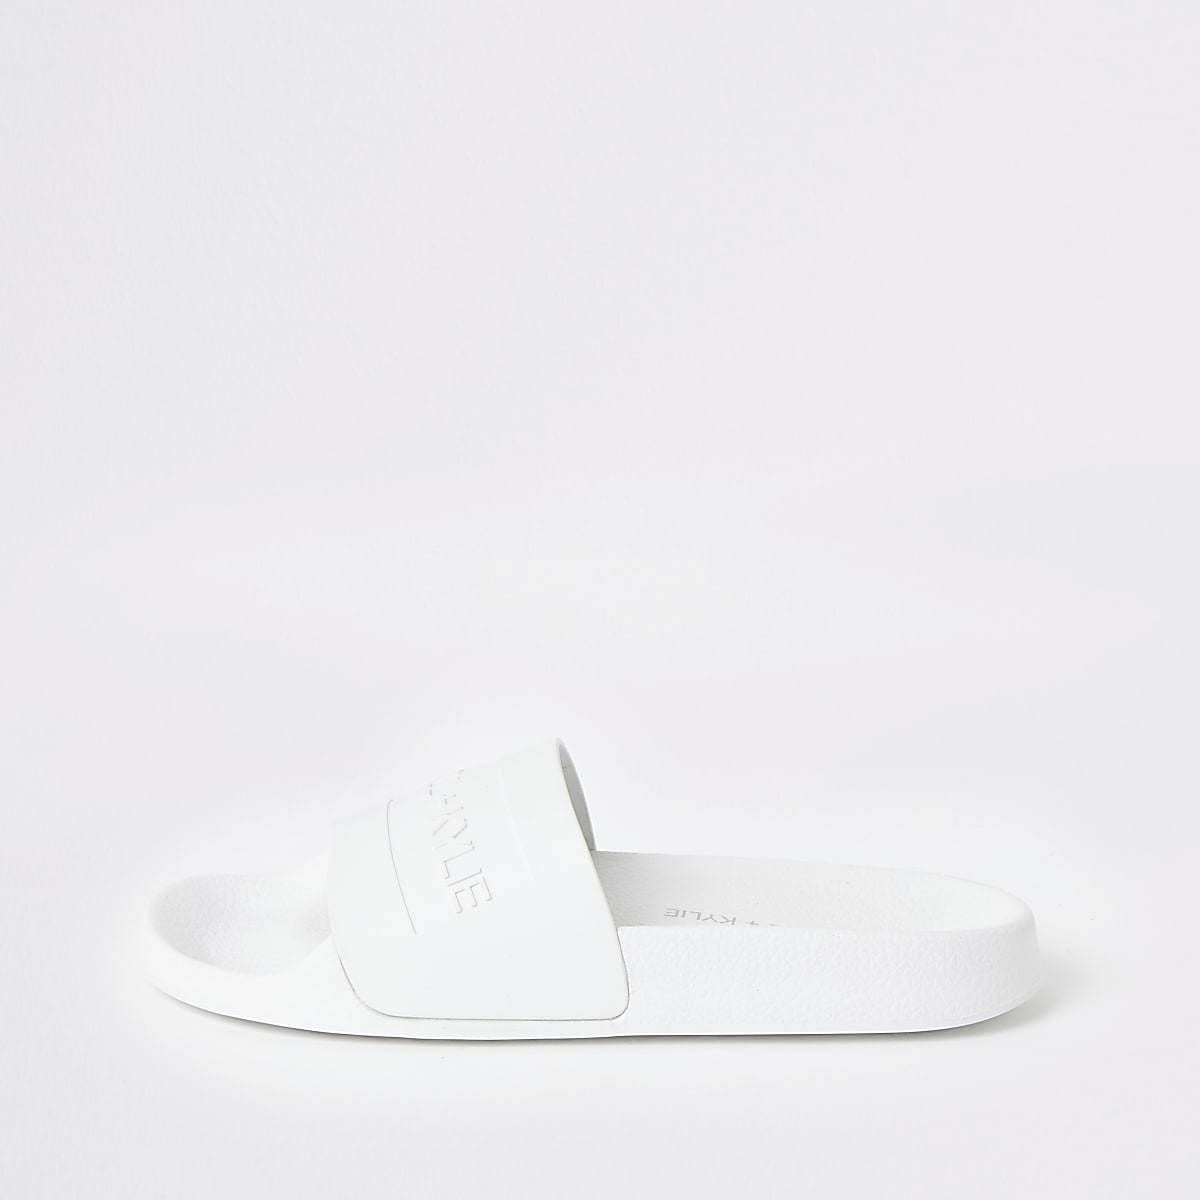 Kendall + Kylie white sliders